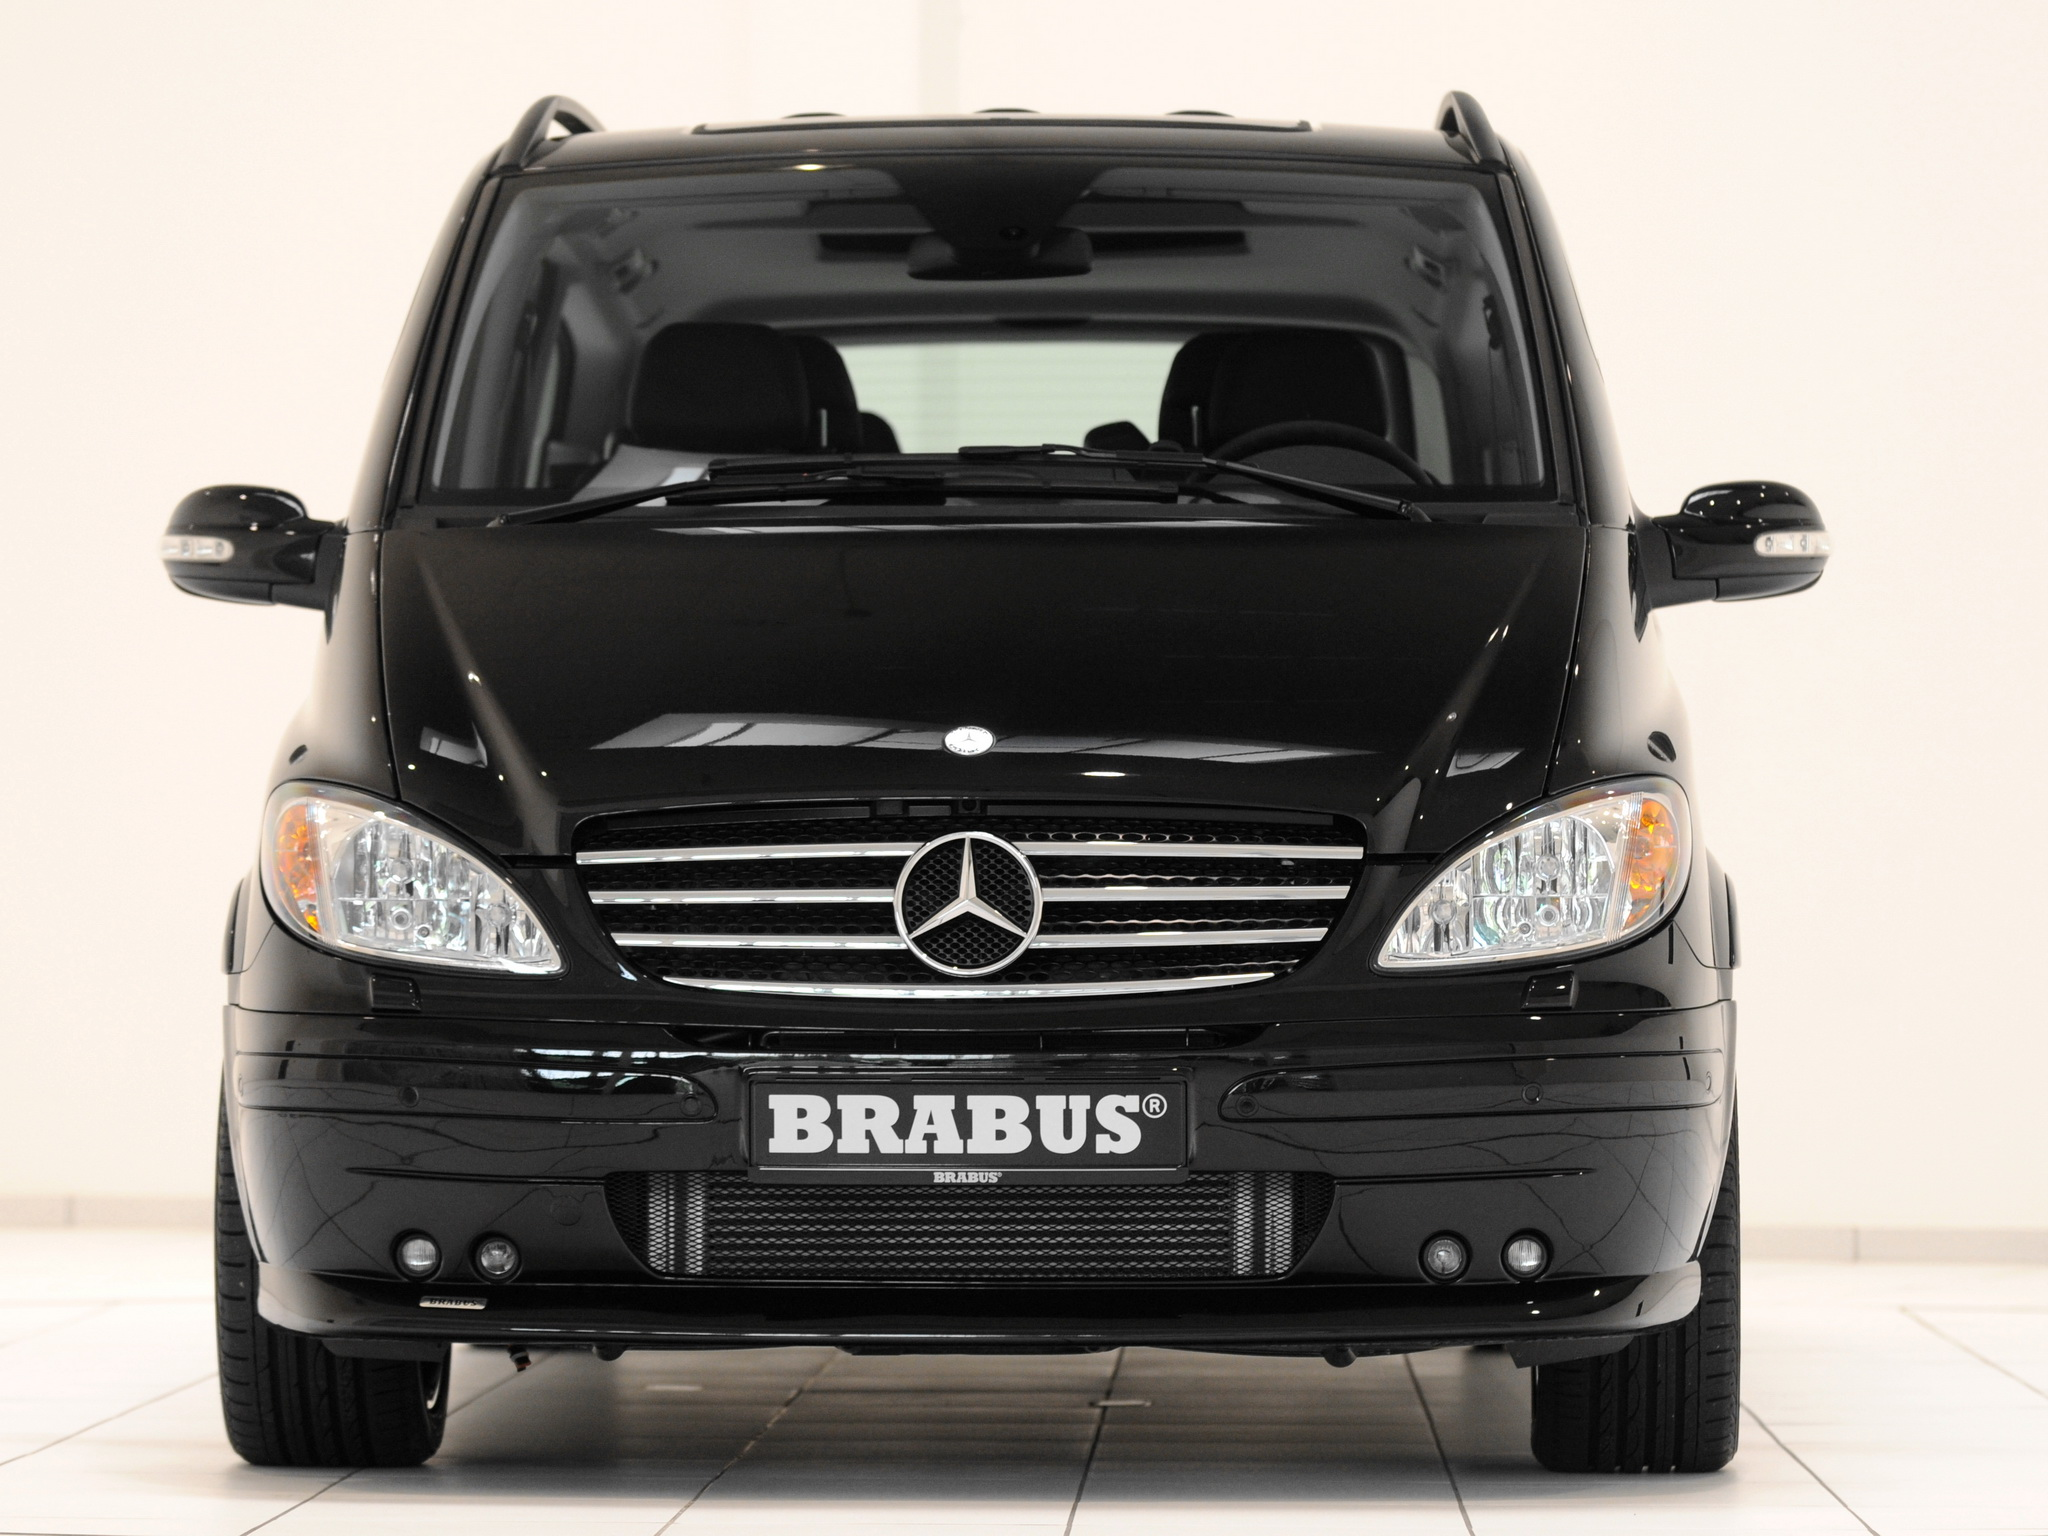 2019 Brabus Mercedes Benz Viano photo - 2